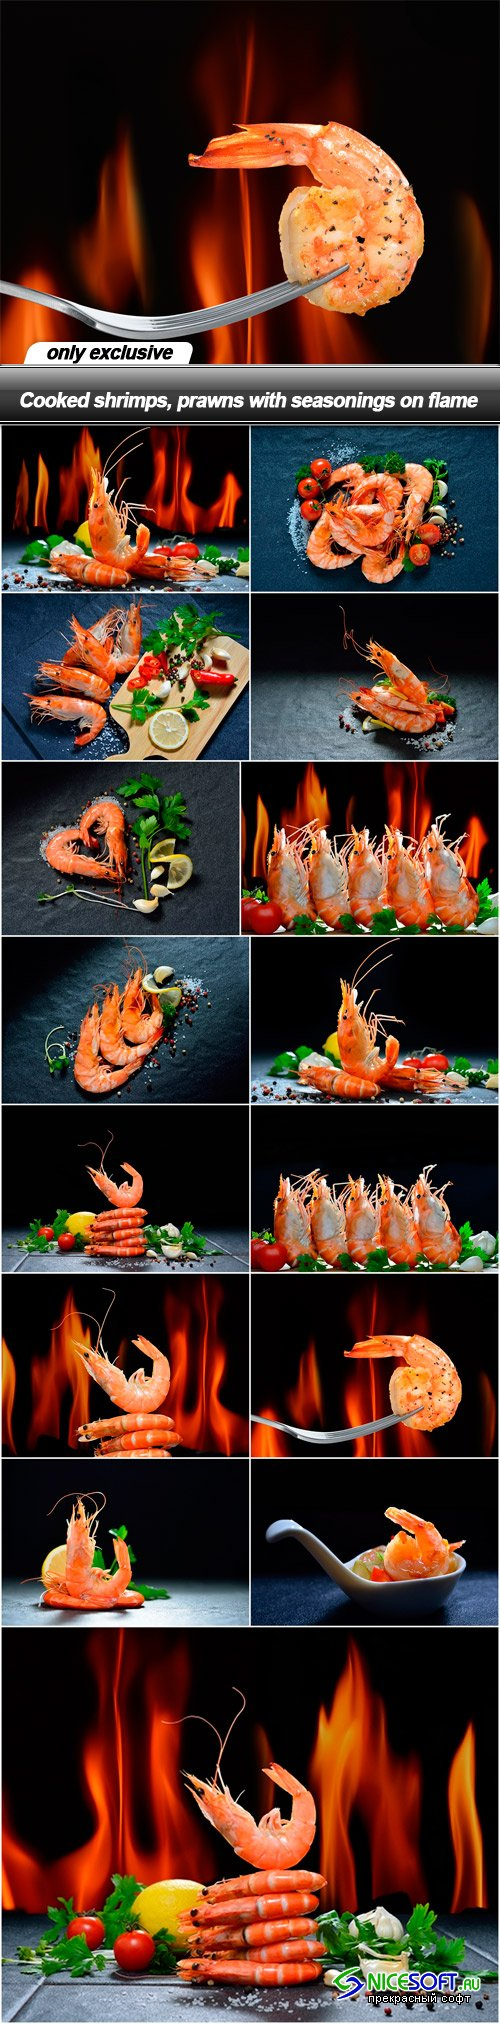 Cooked shrimps, prawns with seasonings on flame